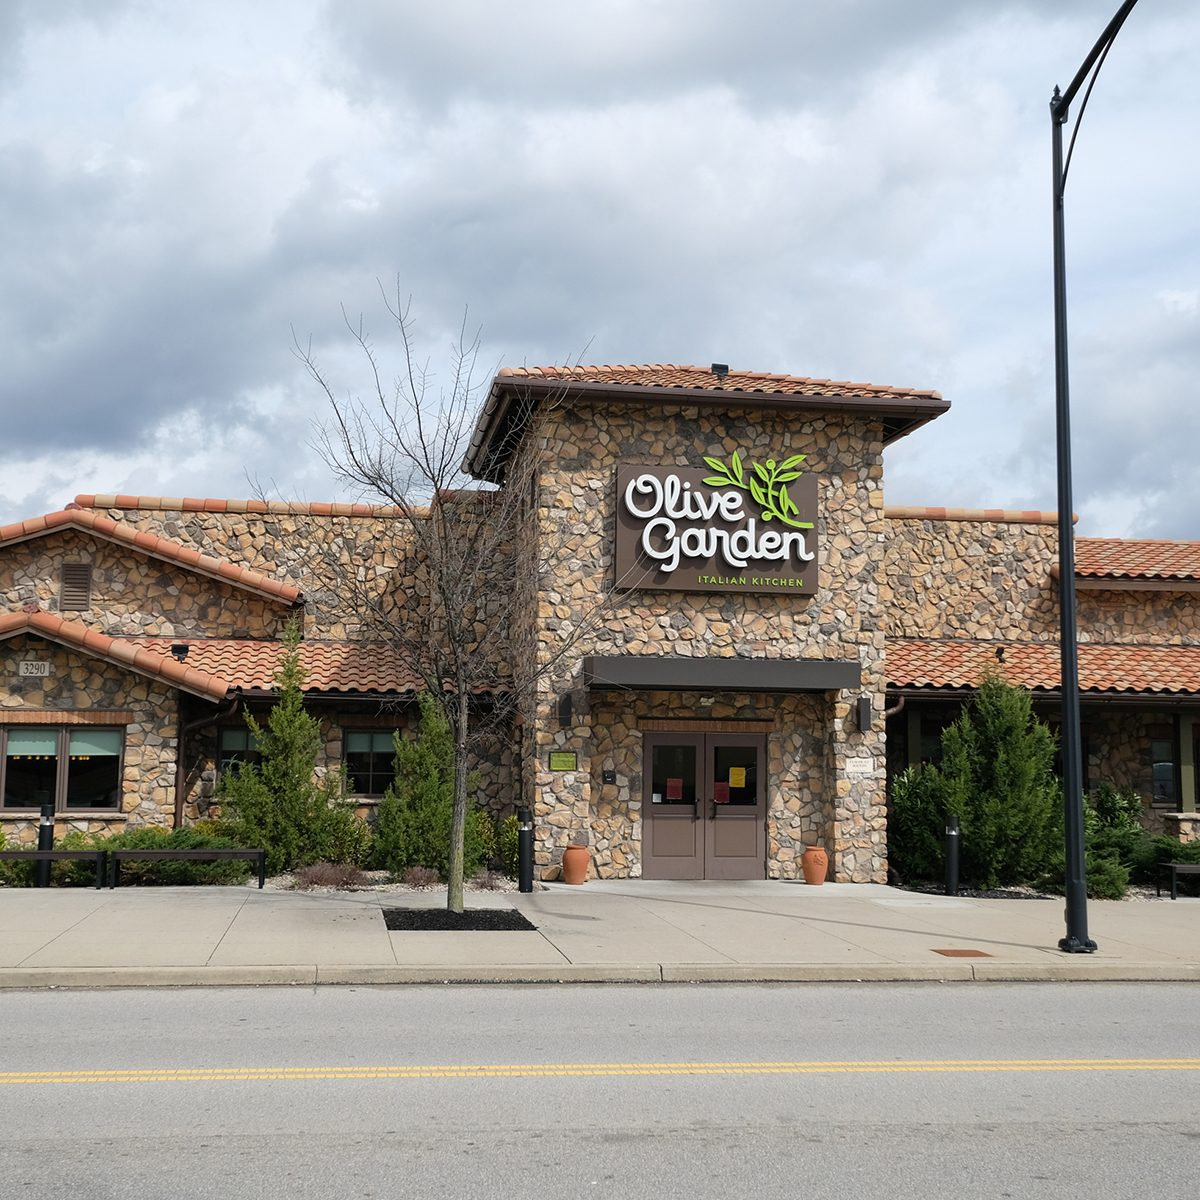 CINCINNATI, OH - MARCH 20: Olive Garden offers carry out only due to the Coronavirus outbreak on March 20th, 2020 in Cincinnati, OH. (Photo by Ian Johnson/Icon Sportswire via Getty Images)